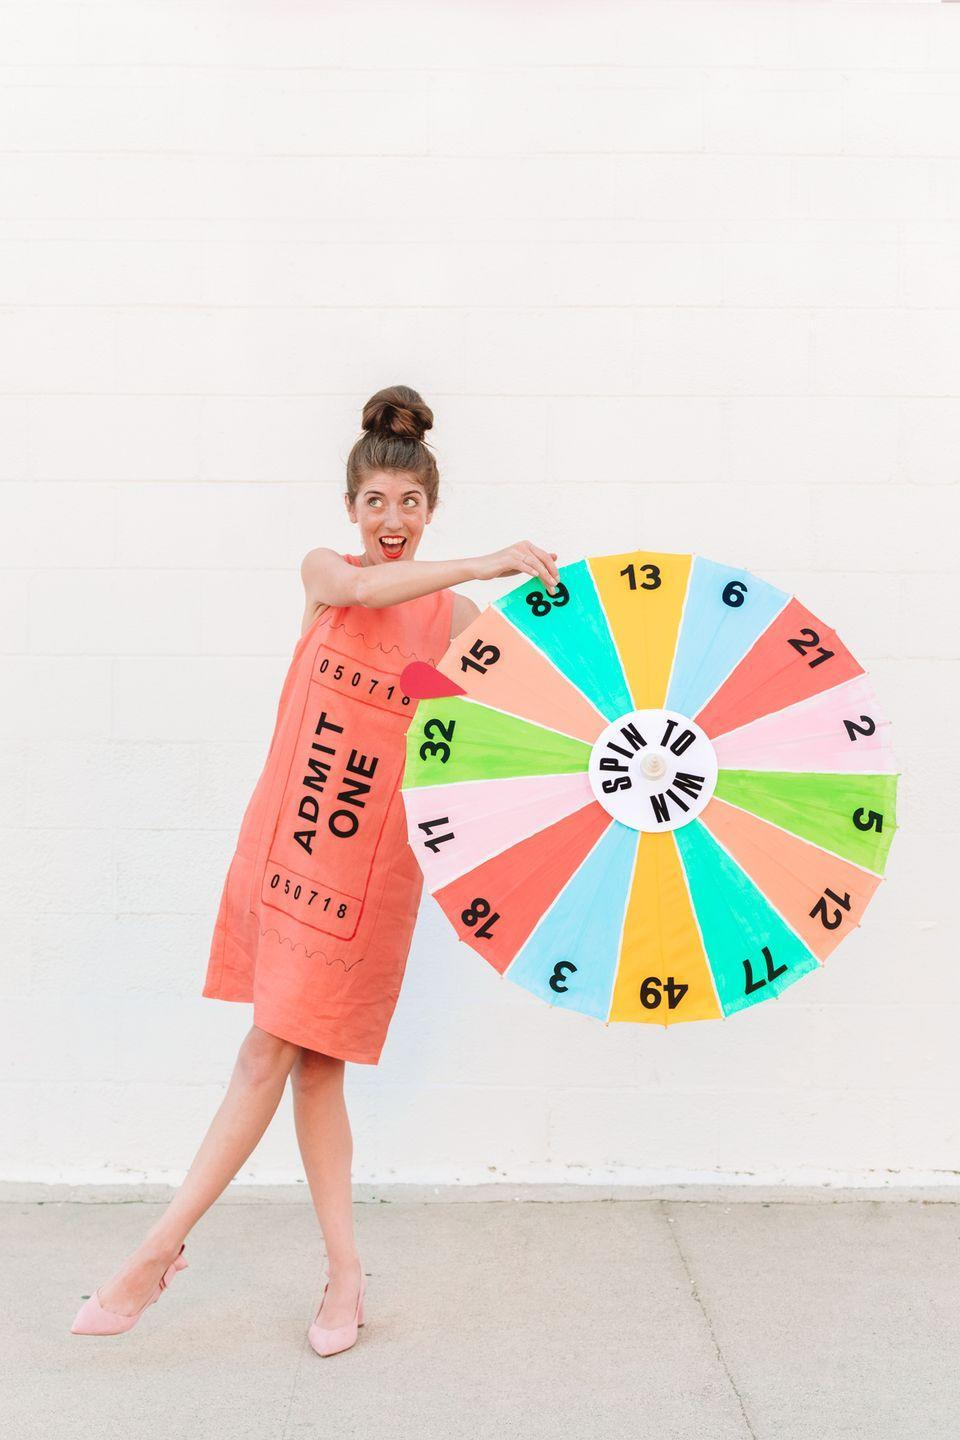 """<p>This ingenious costume uses a parasol to make the carnival game, but you'll be the real winner decked out in it.</p><p><strong>Get the tutorial at <a href=""""https://studiodiy.com/diy-carnival-game-costume/"""" rel=""""nofollow noopener"""" target=""""_blank"""" data-ylk=""""slk:Studio DIY"""" class=""""link rapid-noclick-resp"""">Studio DIY</a>.</strong></p><p><strong><a class=""""link rapid-noclick-resp"""" href=""""https://www.amazon.com/gp/product/B00RKBS9A0/ref=as_li_ss_tl?tag=syn-yahoo-20&ascsubtag=%5Bartid%7C10050.g.4571%5Bsrc%7Cyahoo-us"""" rel=""""nofollow noopener"""" target=""""_blank"""" data-ylk=""""slk:SHOP WHITE PARASOLS"""">SHOP WHITE PARASOLS</a><br></strong></p>"""